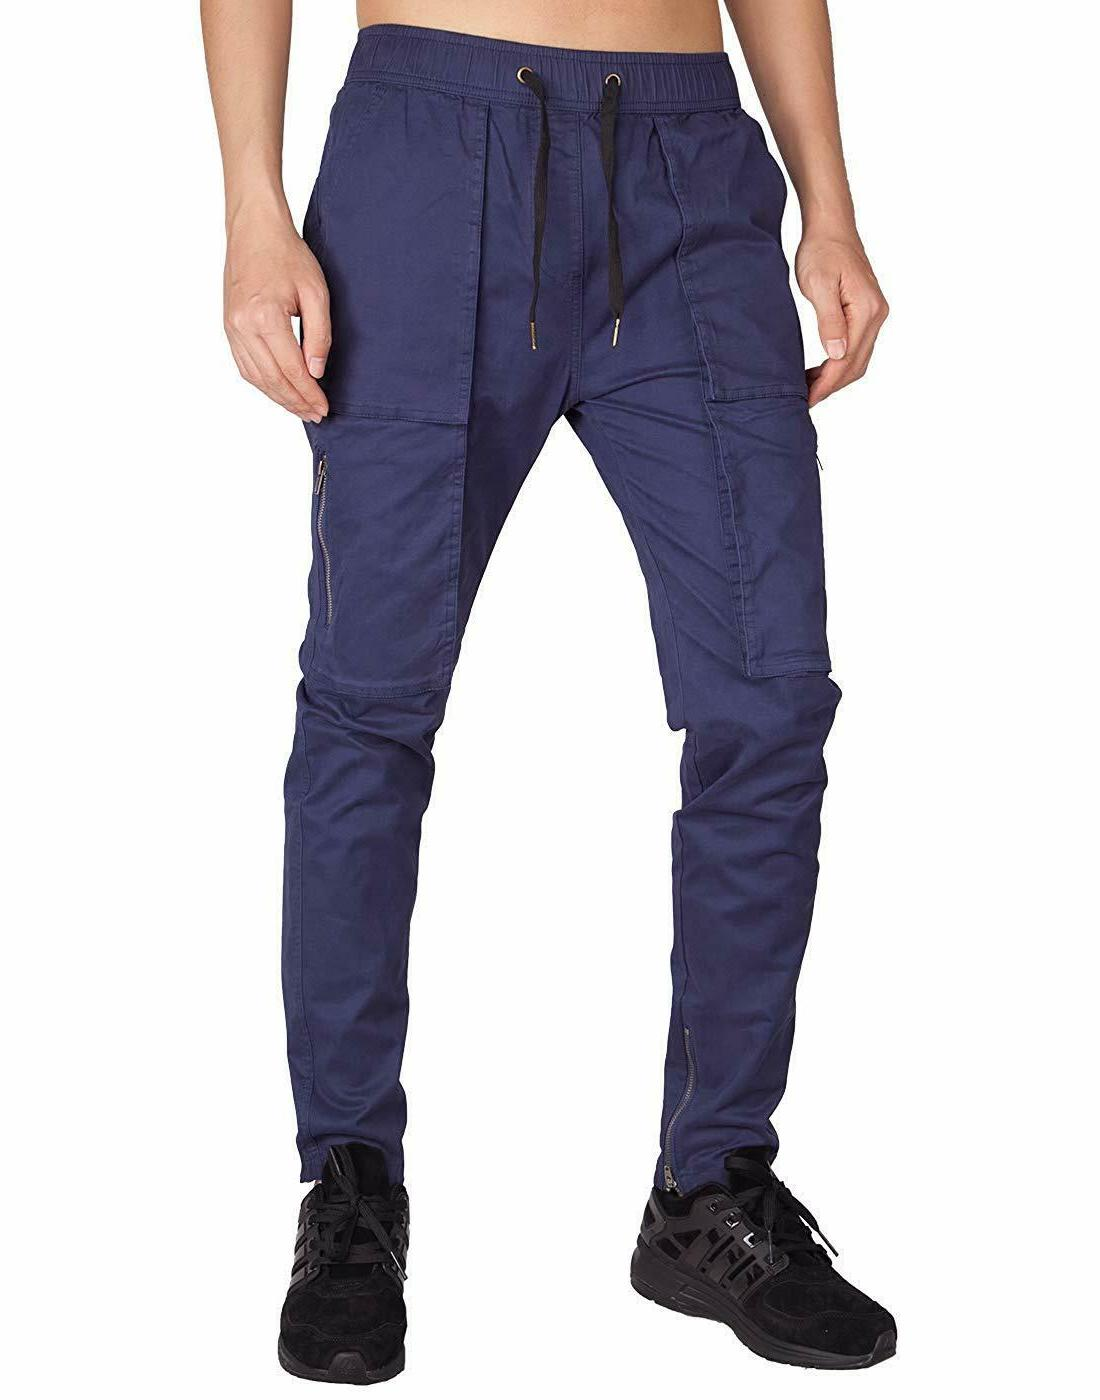 italy morn men s chino cargo pants